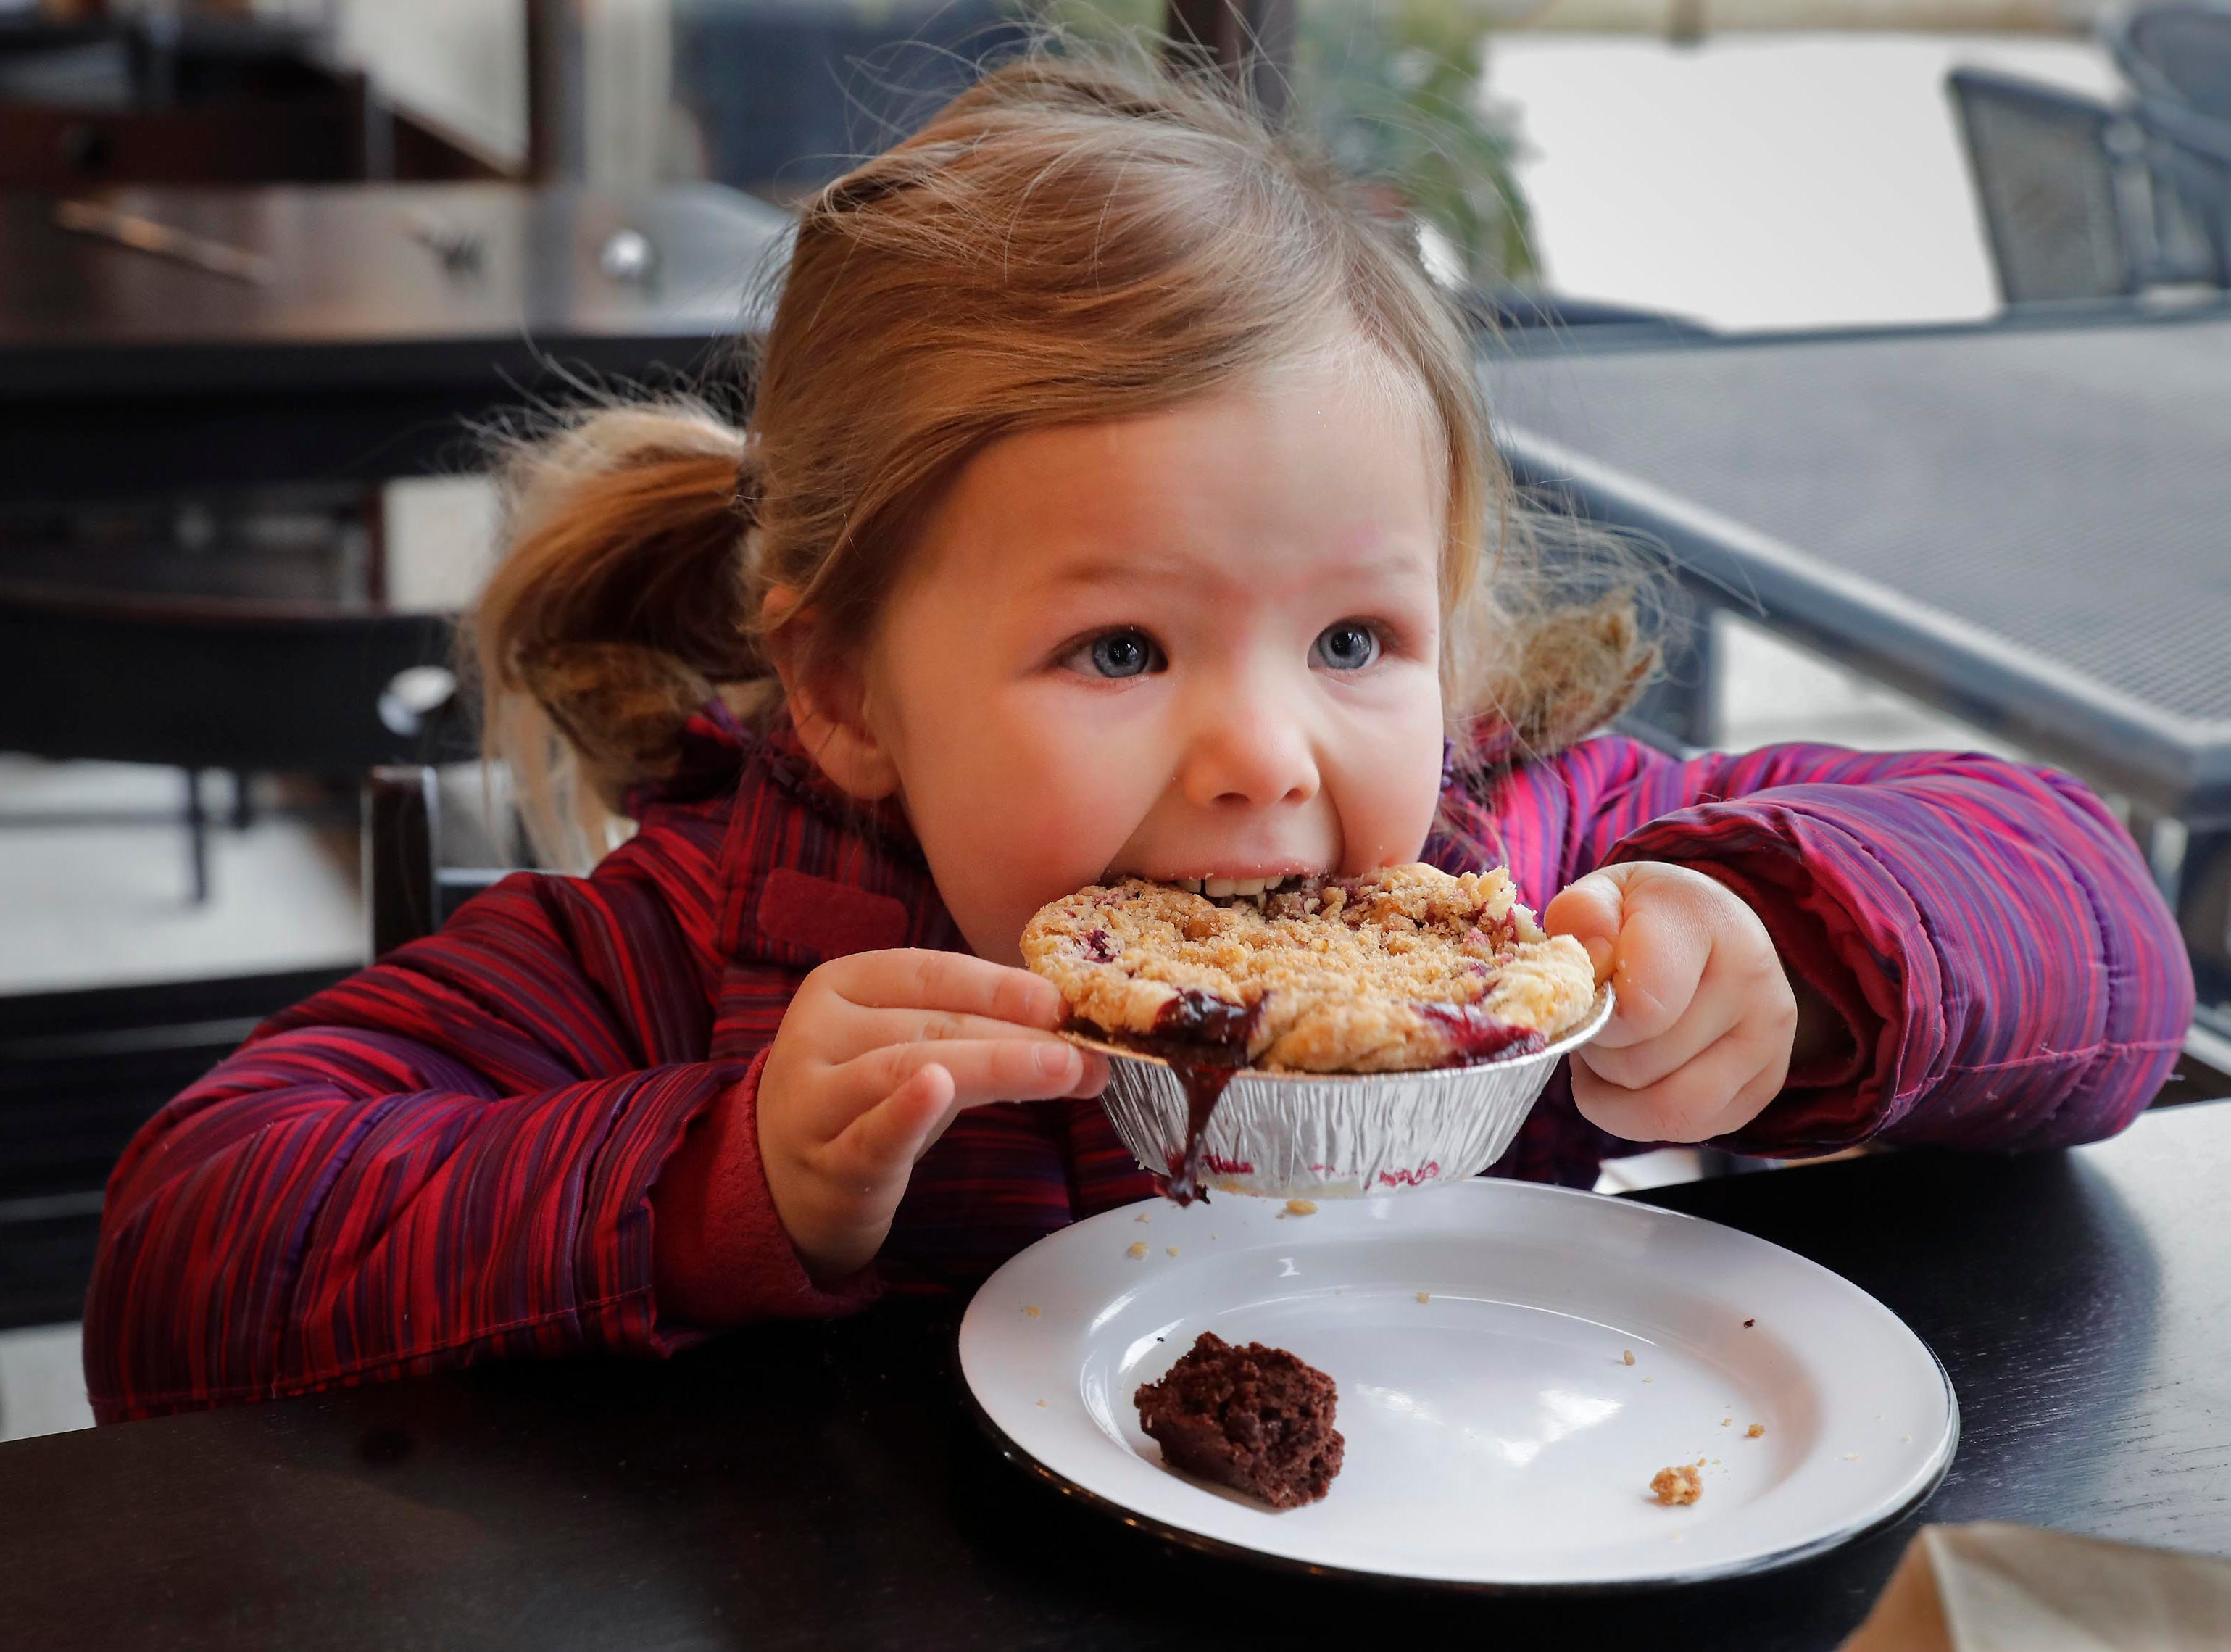 Maisie Naus, 3, bites into a cherry small pie at SmallPie, 2504 E. Oklahoma Ave. in Bay View, a tiny counter-service cafe featuring sweet and hand small pies.